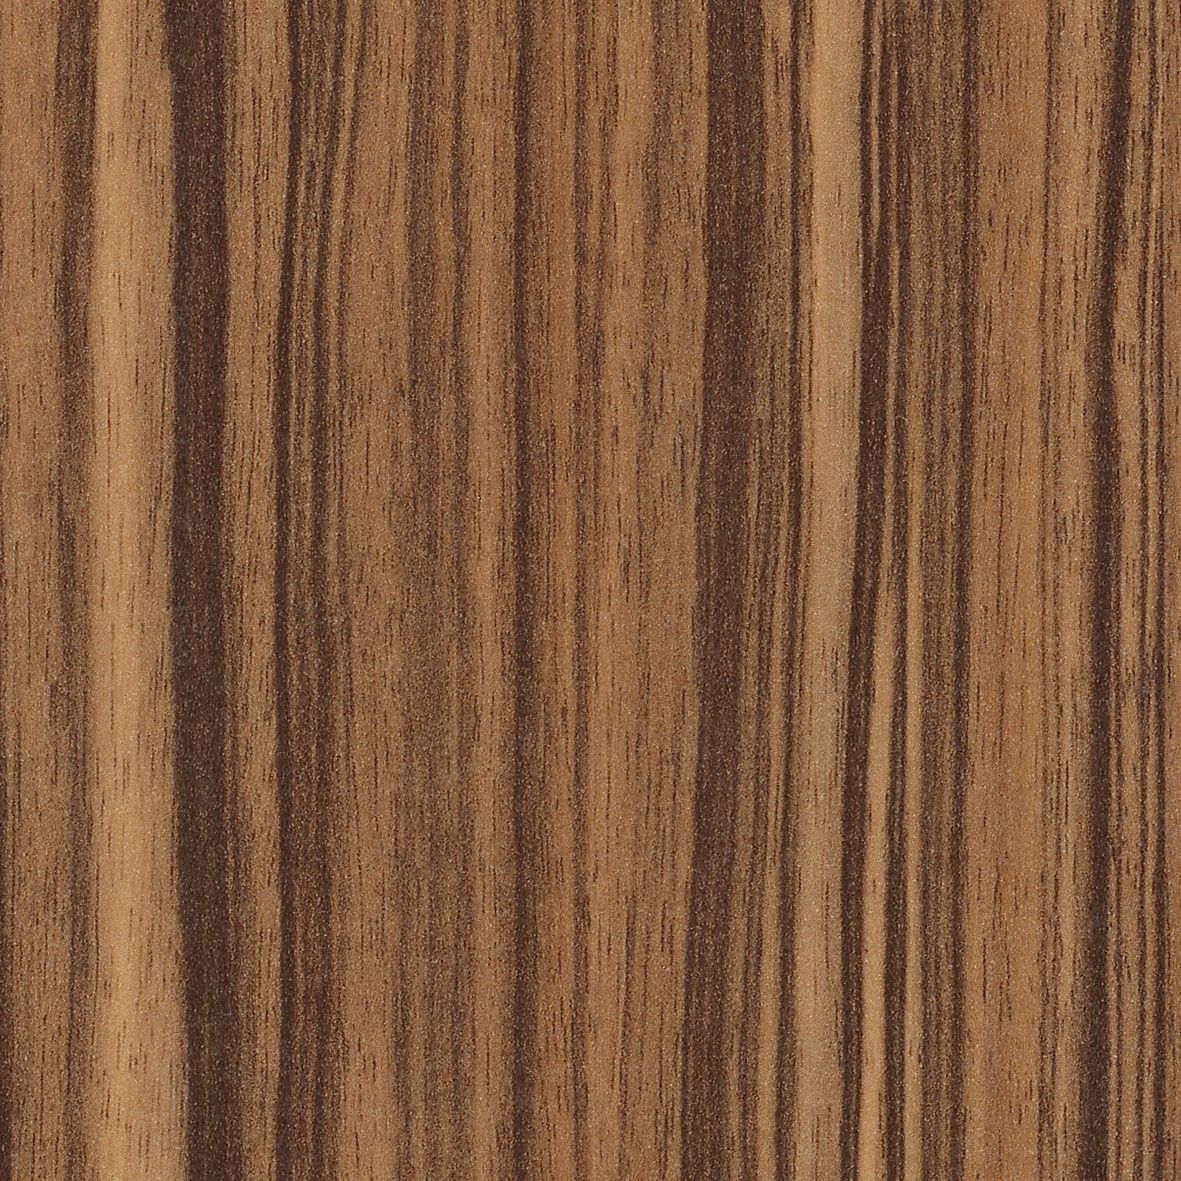 Cantana Zebrano Effect Laminate Flooring Sample M C B Departments Diy At Bq